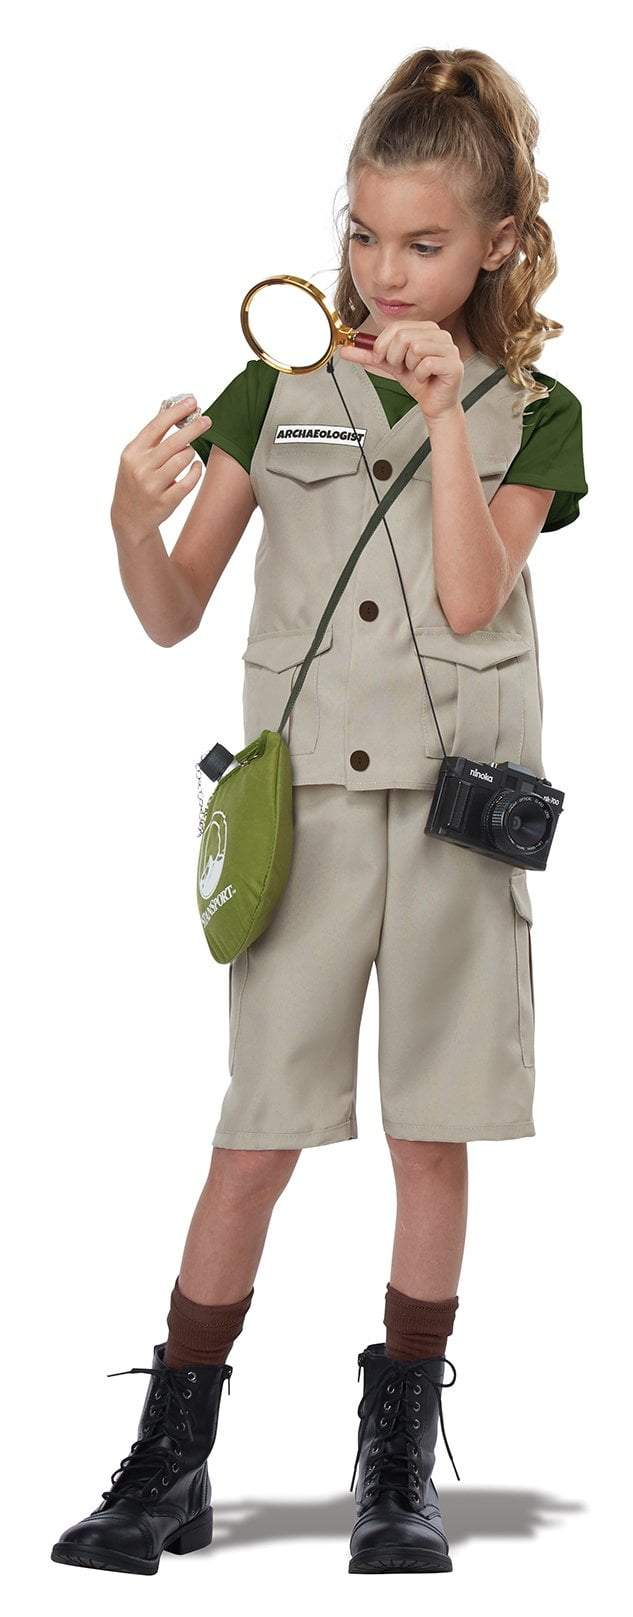 California Costumes Costumes MEDIUM Kid's Wild Life Expert/Archaeologist Costume